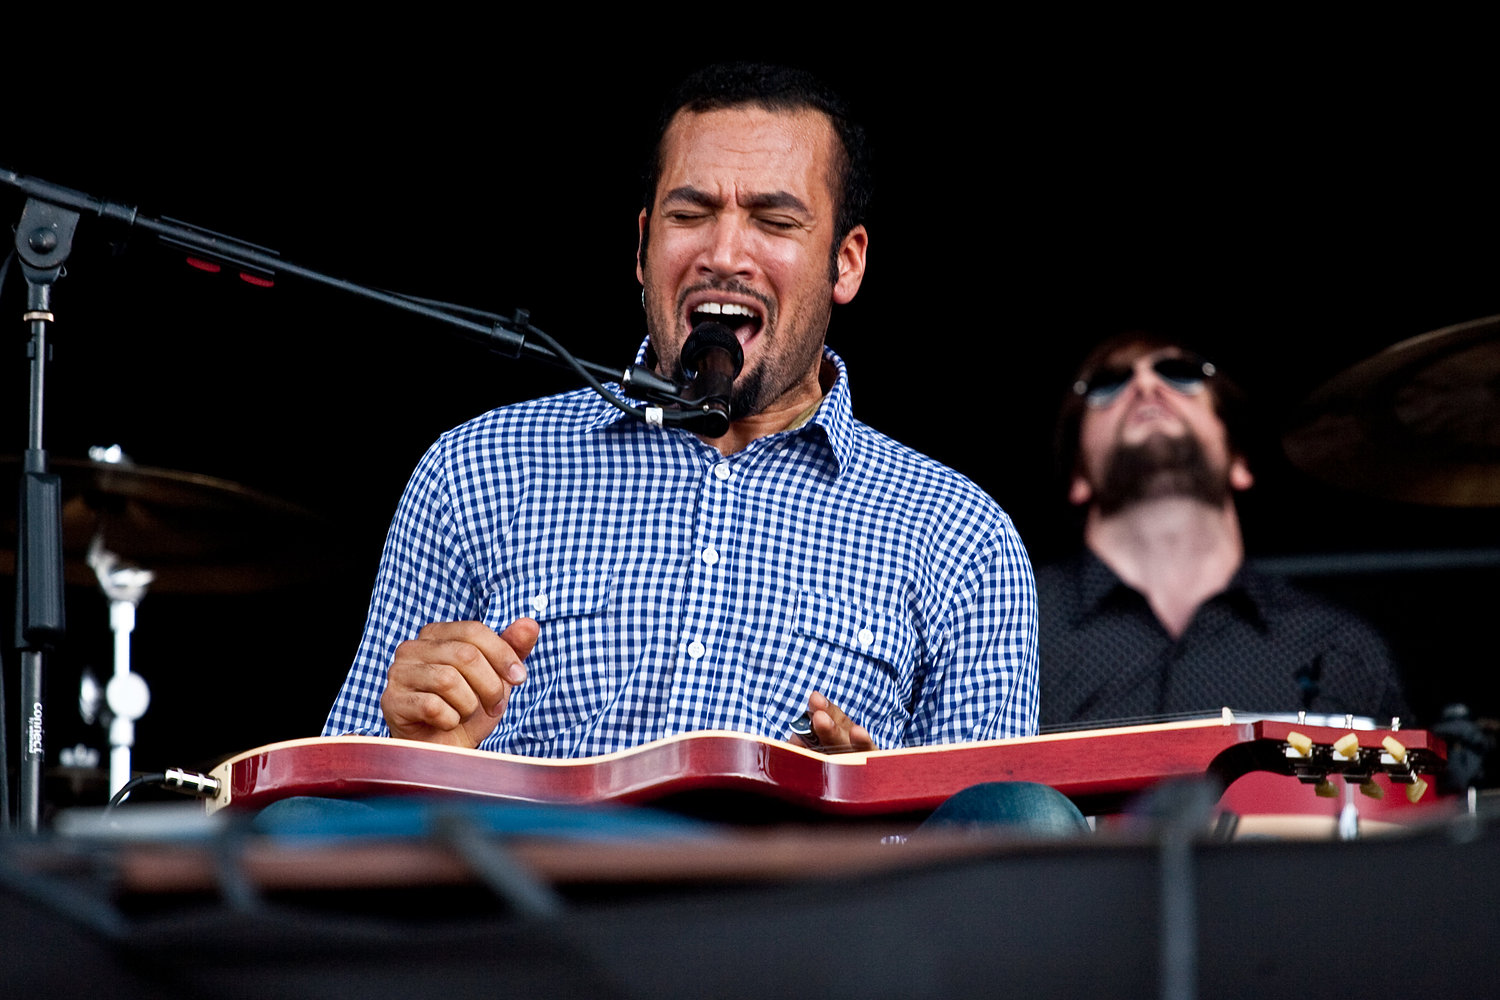 Ben Harper and the Relentless 7 - Hard Rock Calling 2009